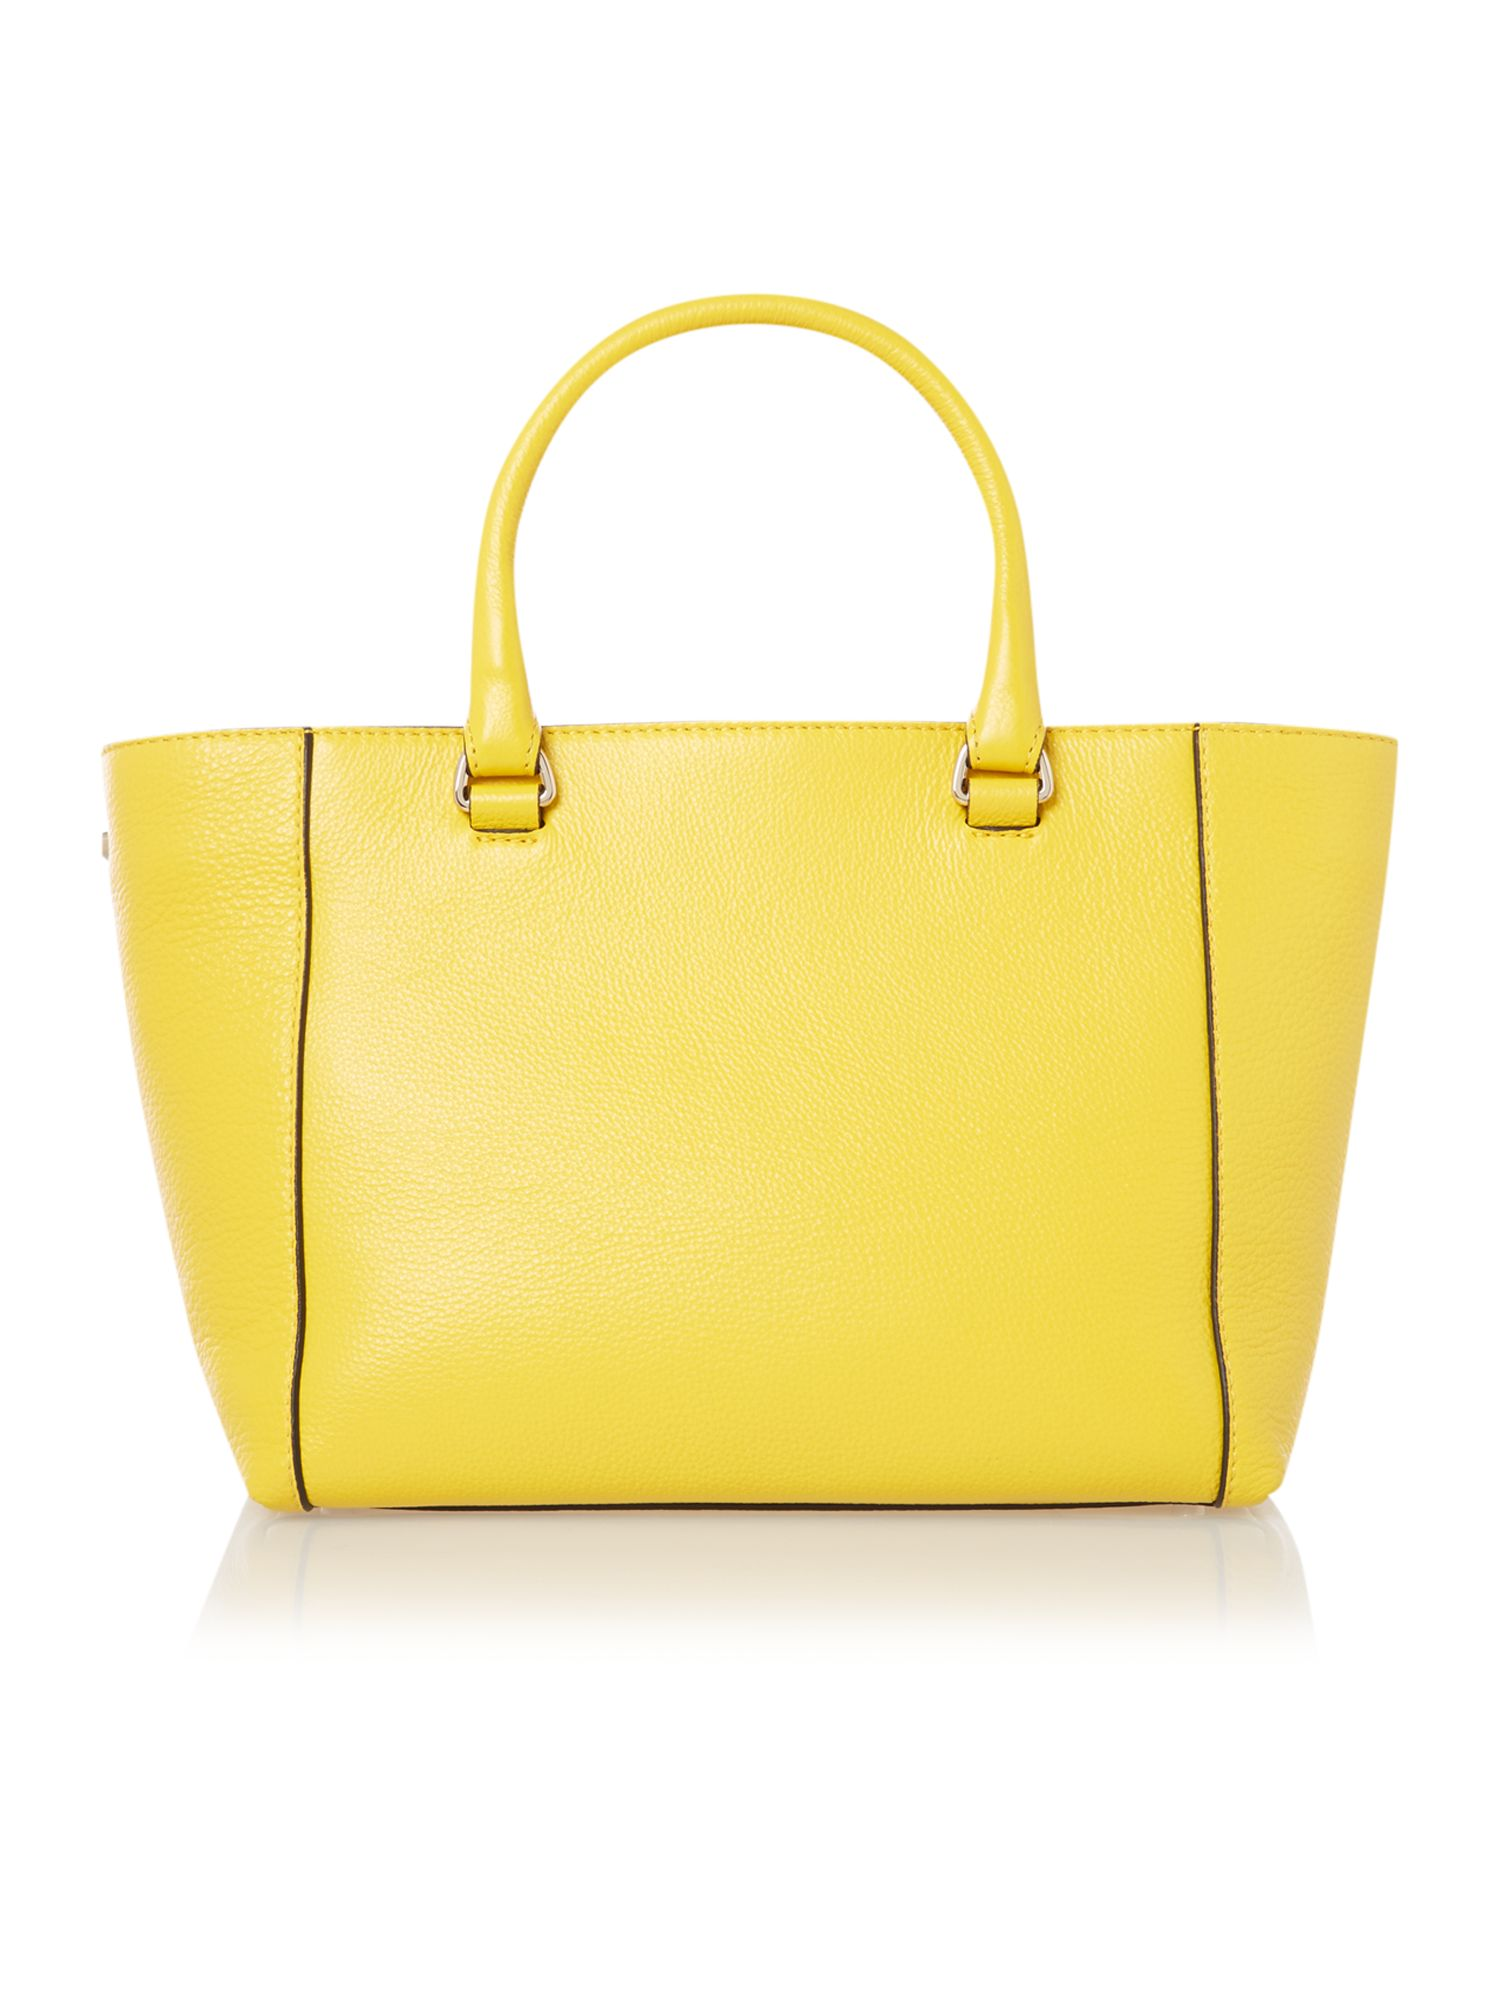 Celeste large yellow tote bag